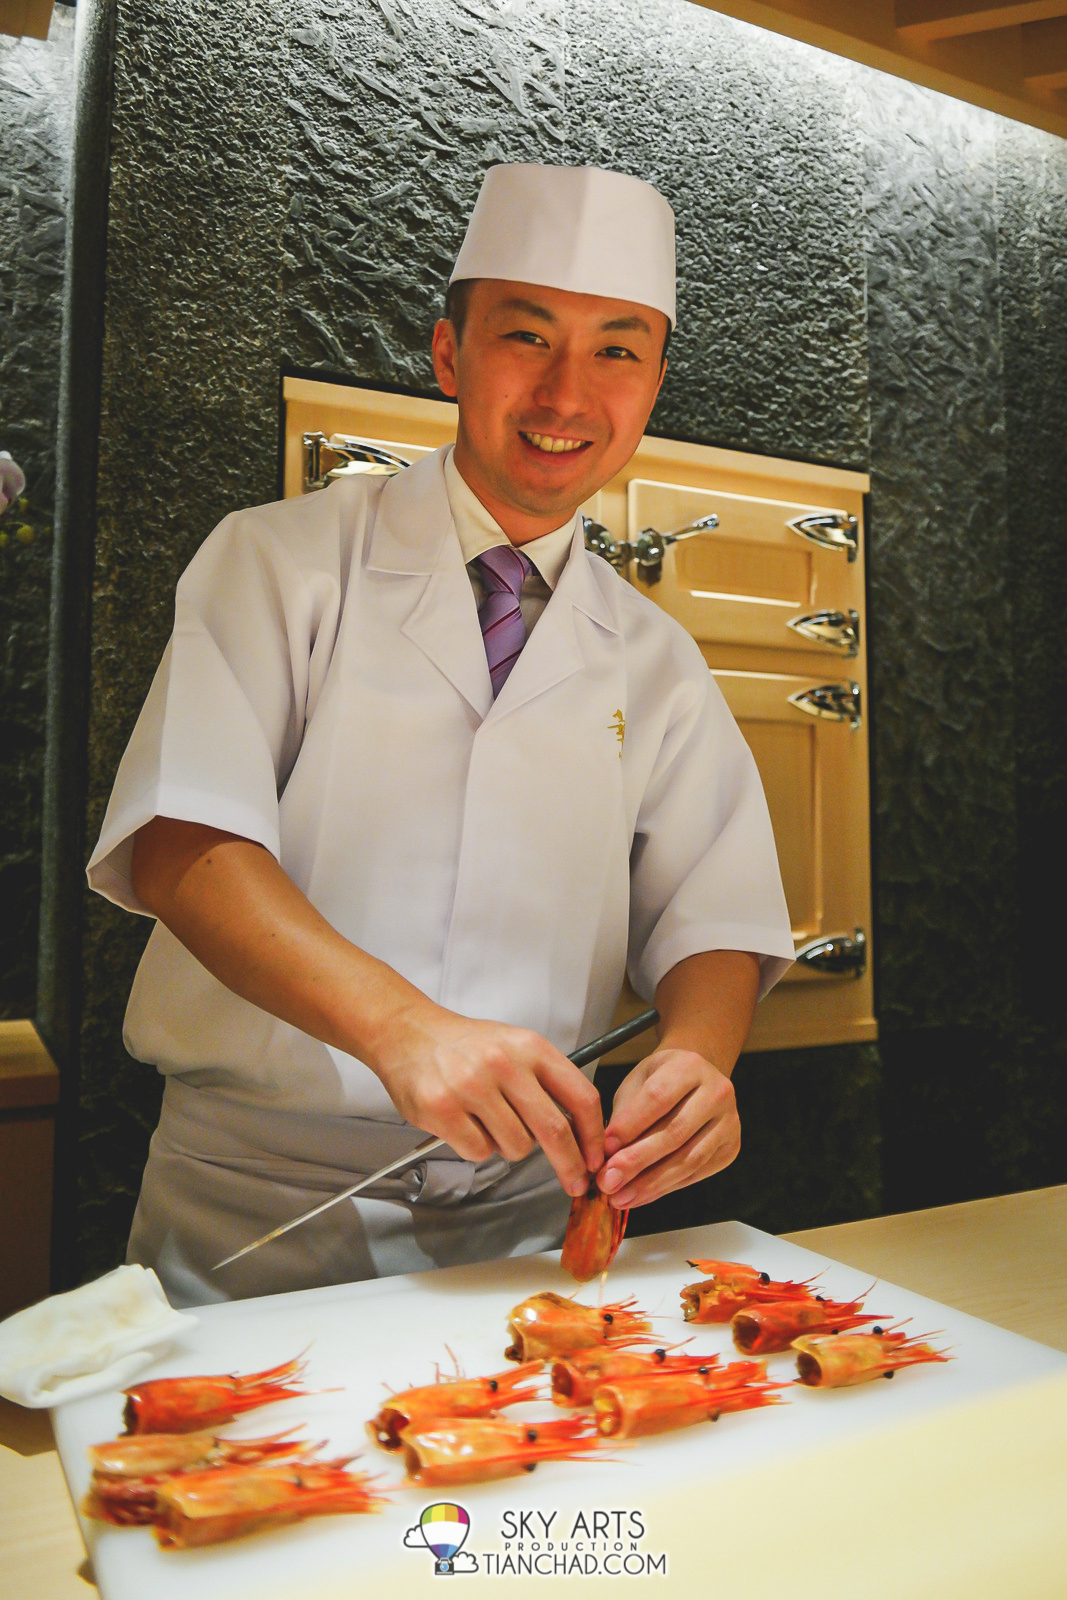 I do enjoy looking at how Sushi Chef preparing our food. Therefore do look for the Sushi Bar seats if you like it too